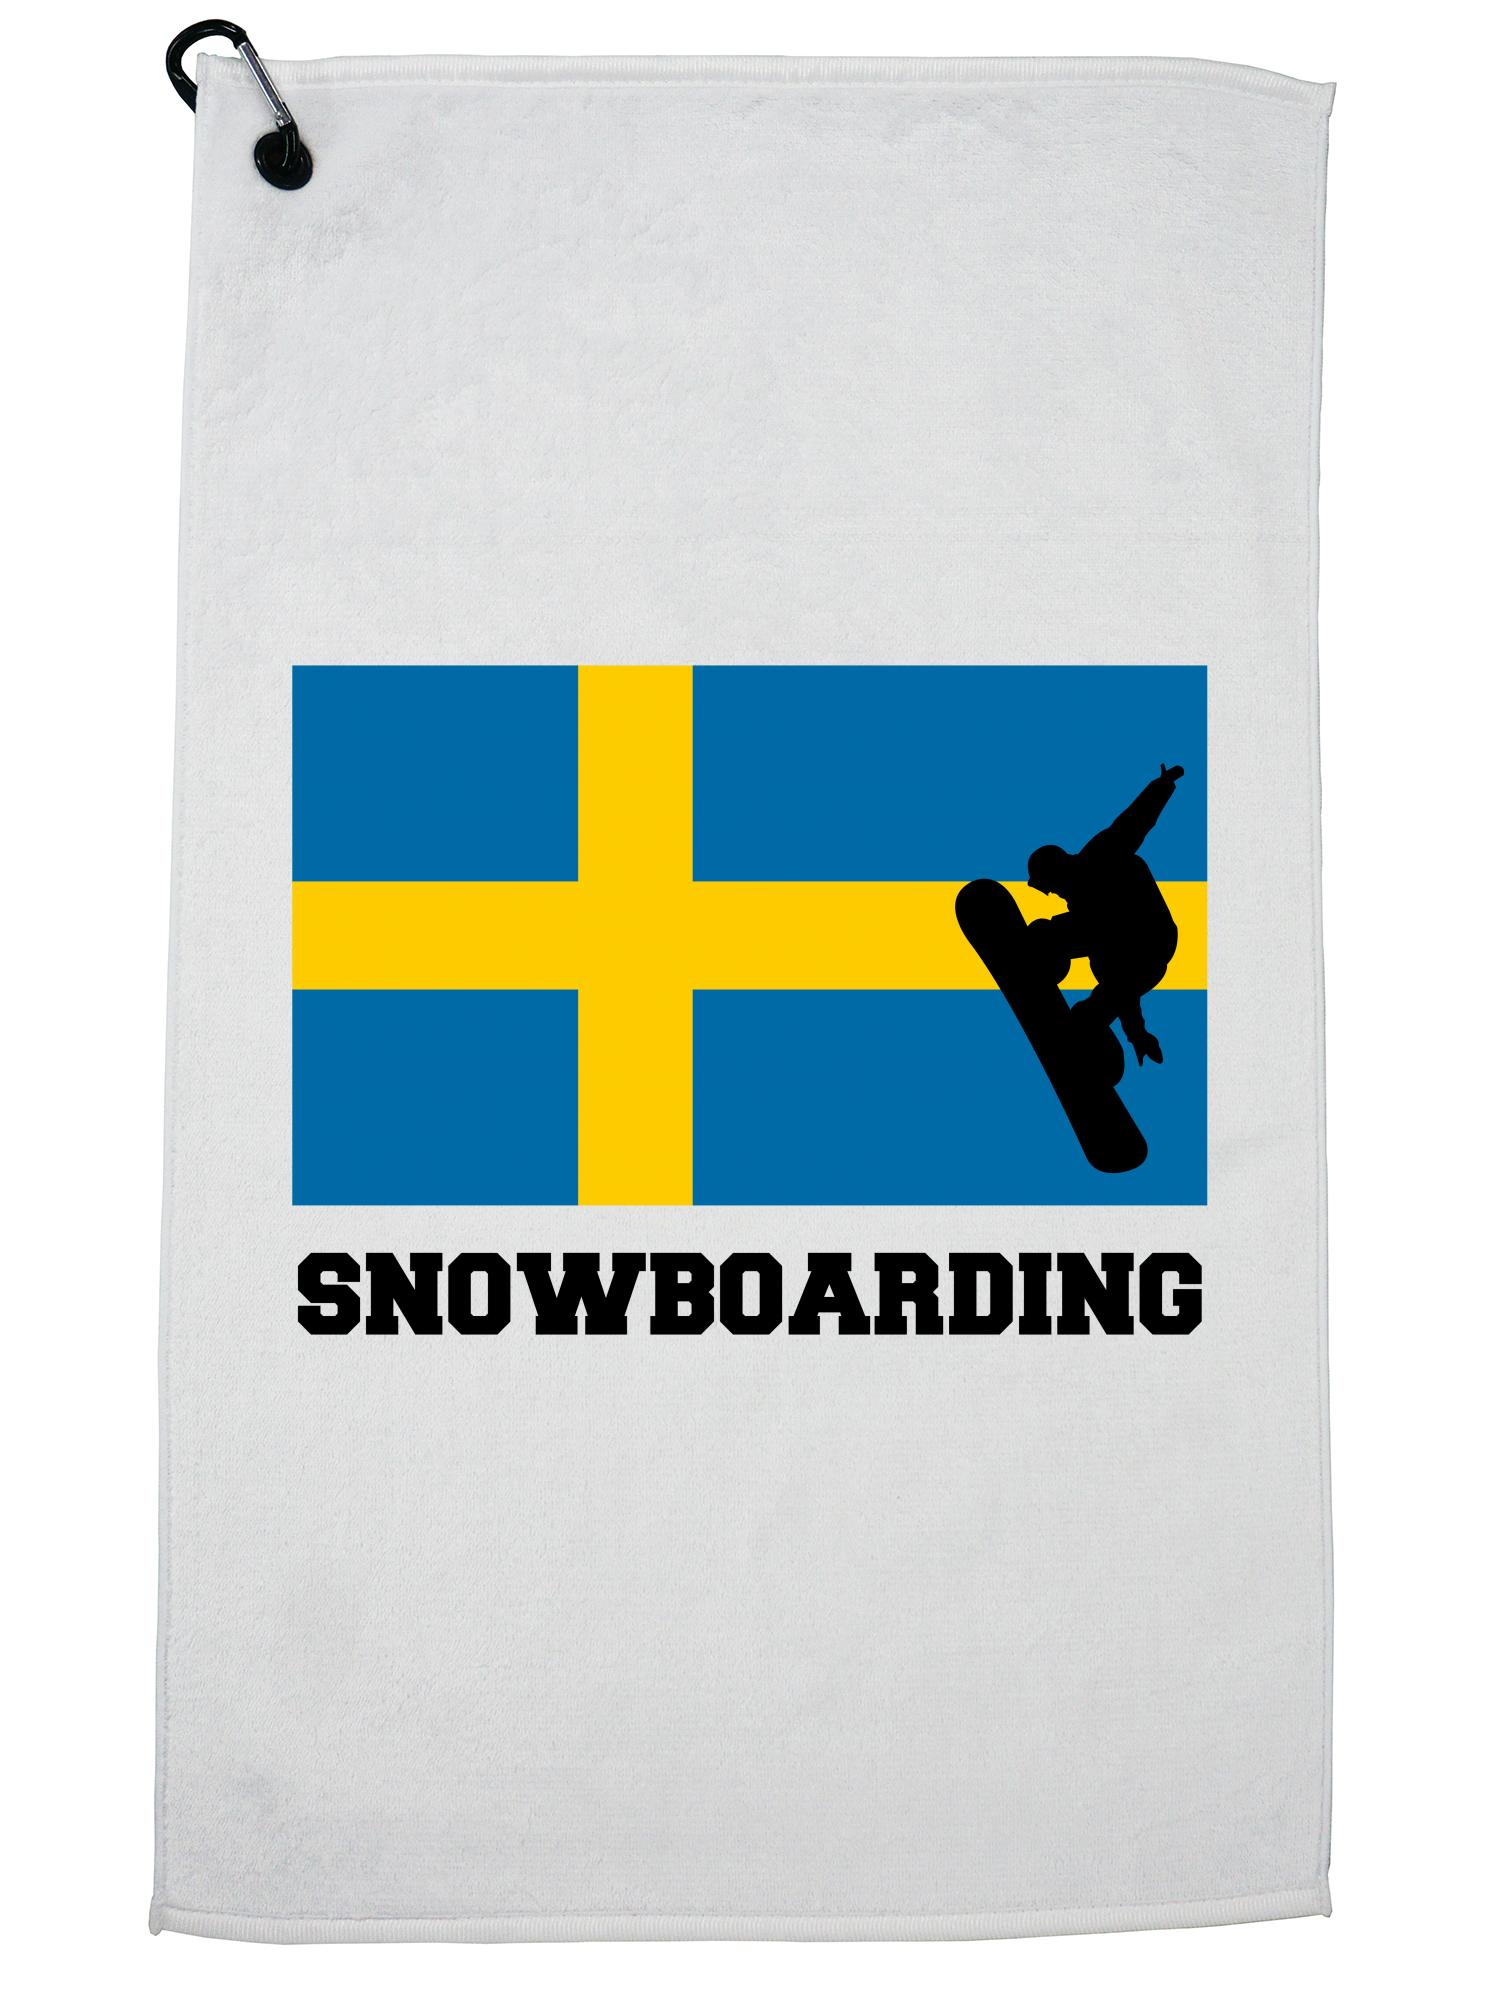 Sweden Olympic Snowboarding Flag Silhouette Golf Towel with Carabiner Clip by Hollywood Thread